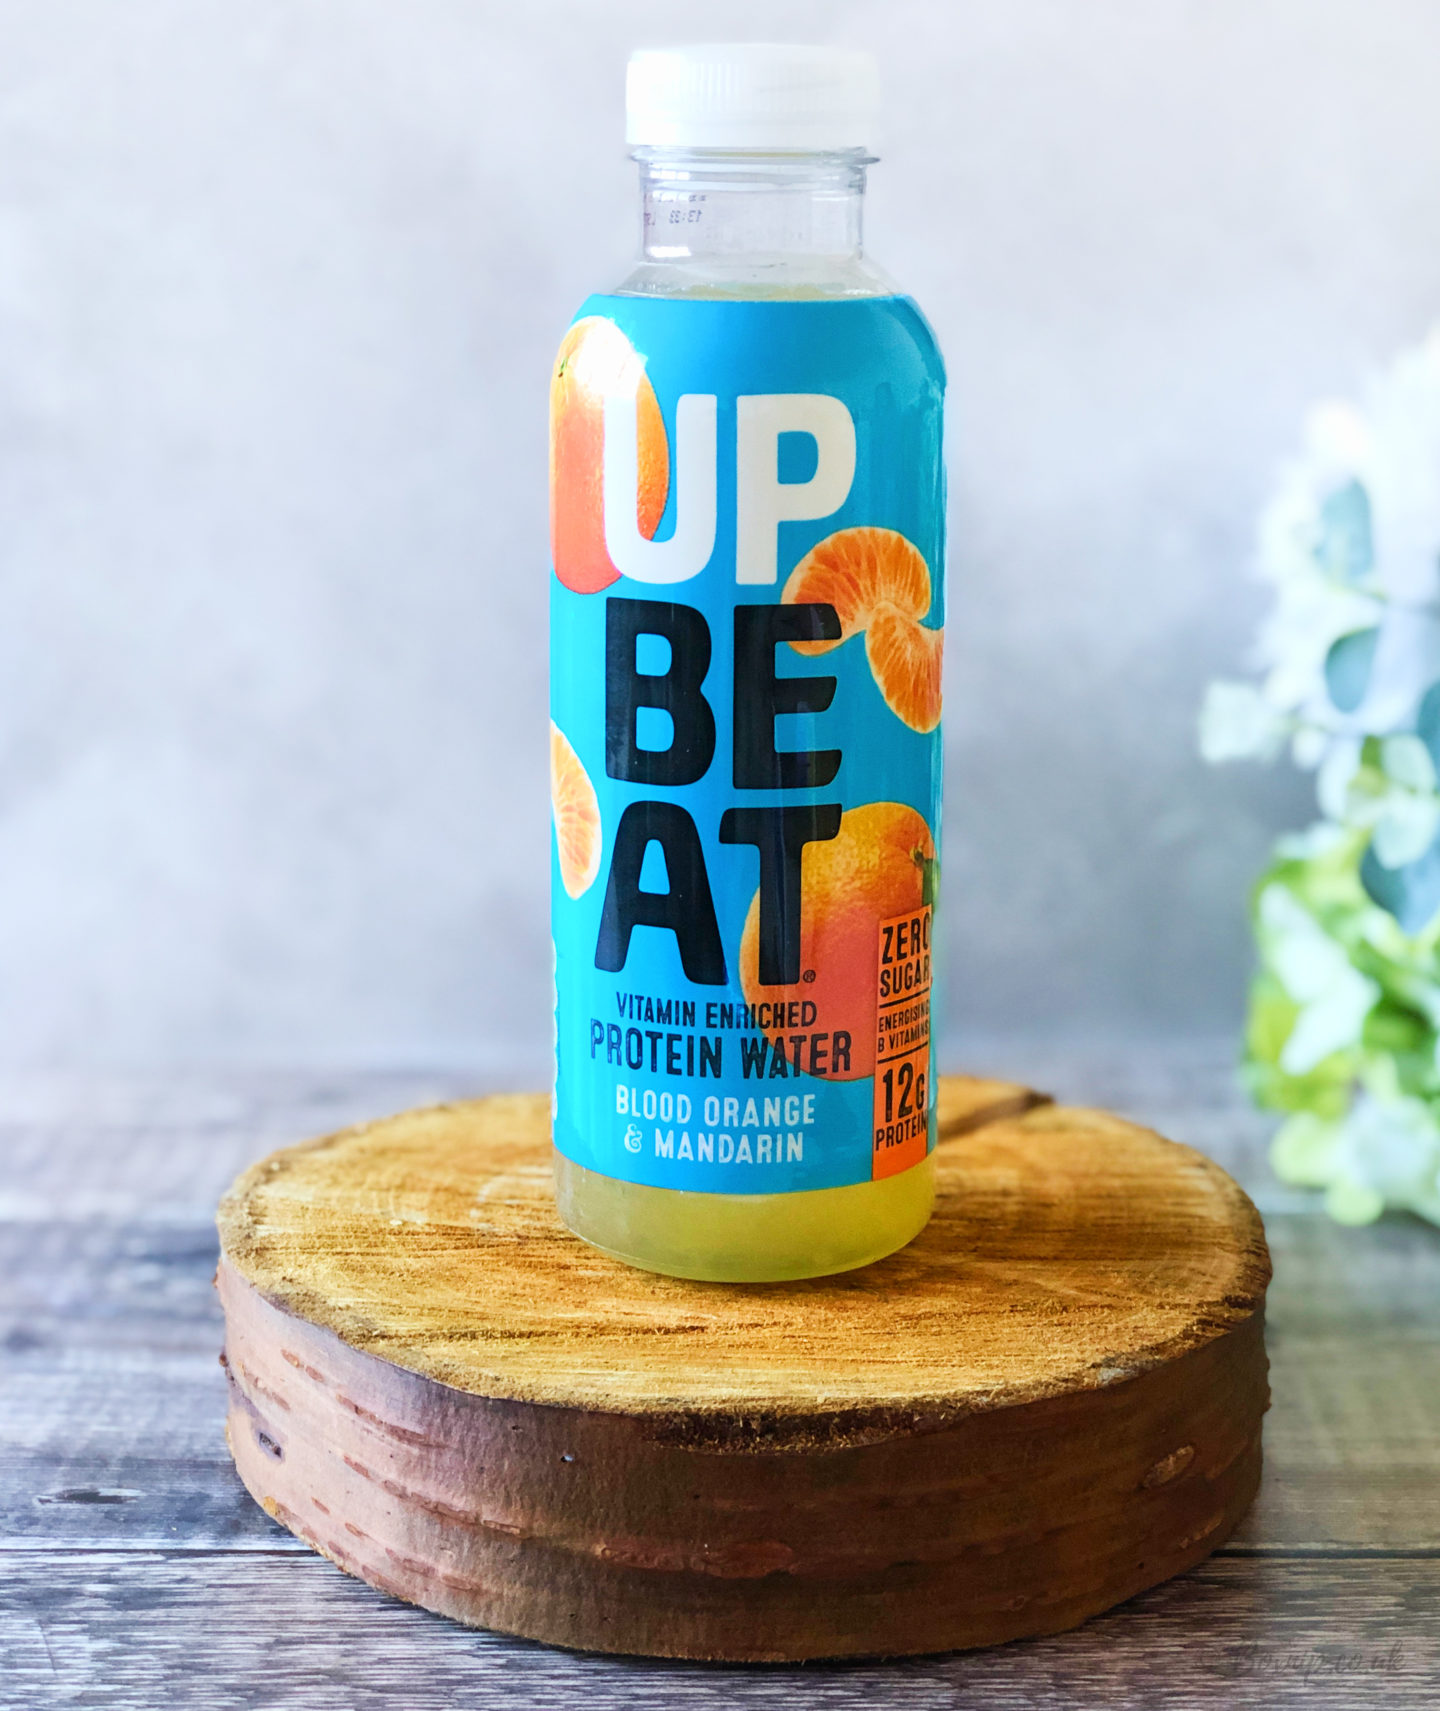 Upbeat Drinks Juicy Protein Water - Bood Orange & Mandarin - October 2019 Degusta Box